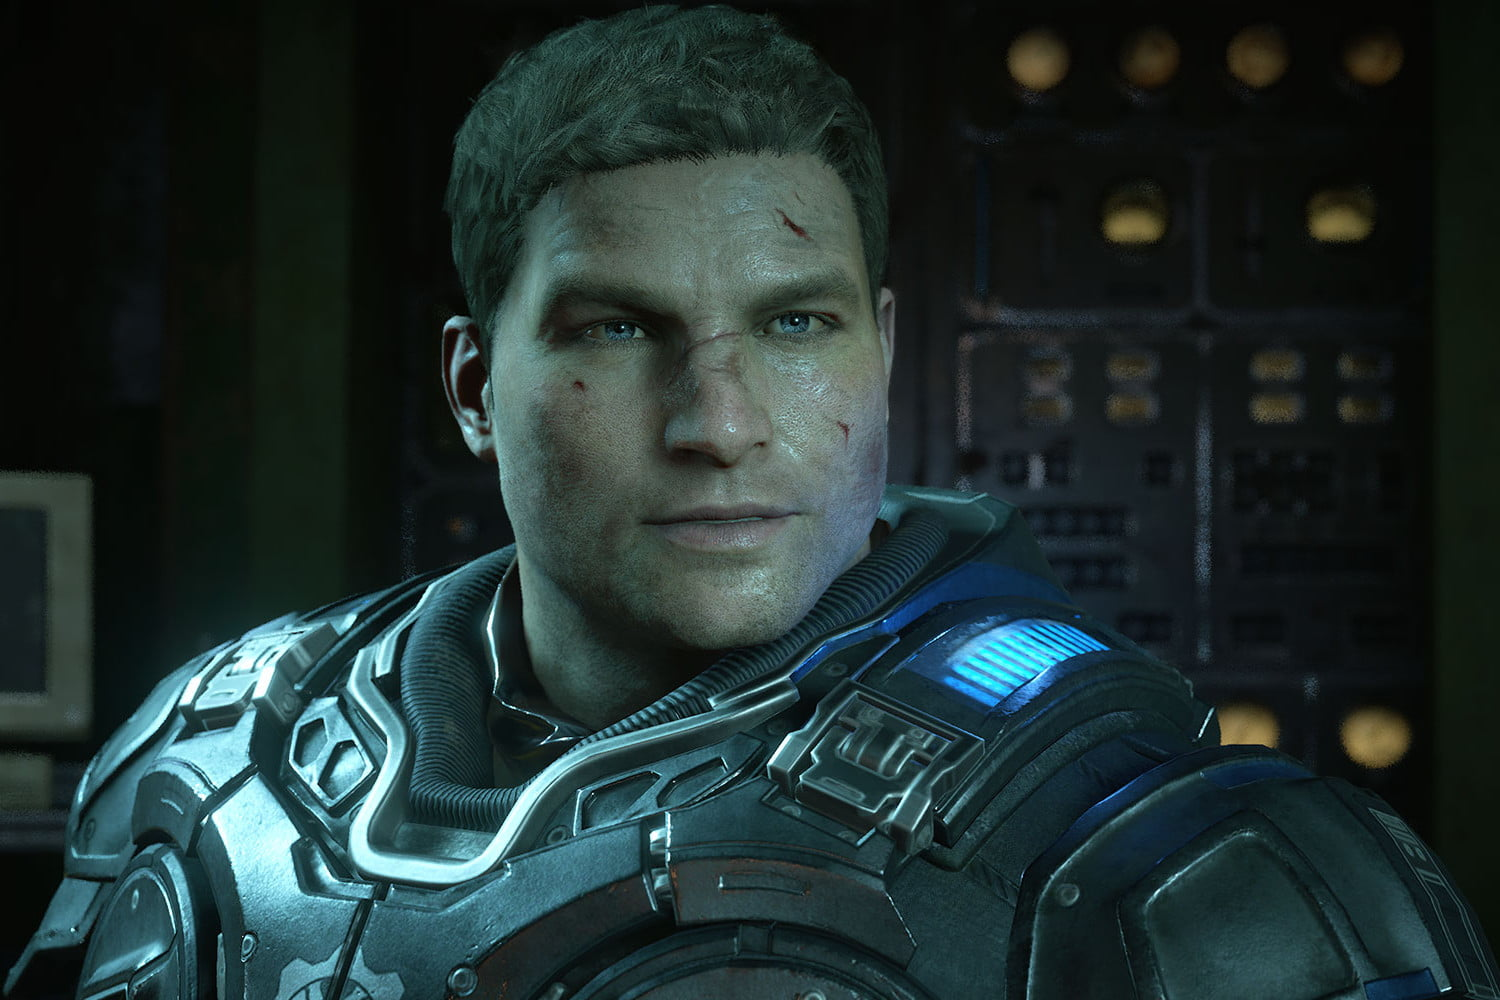 Gears Of War 4 PC Will Have Better Graphical Control on PC